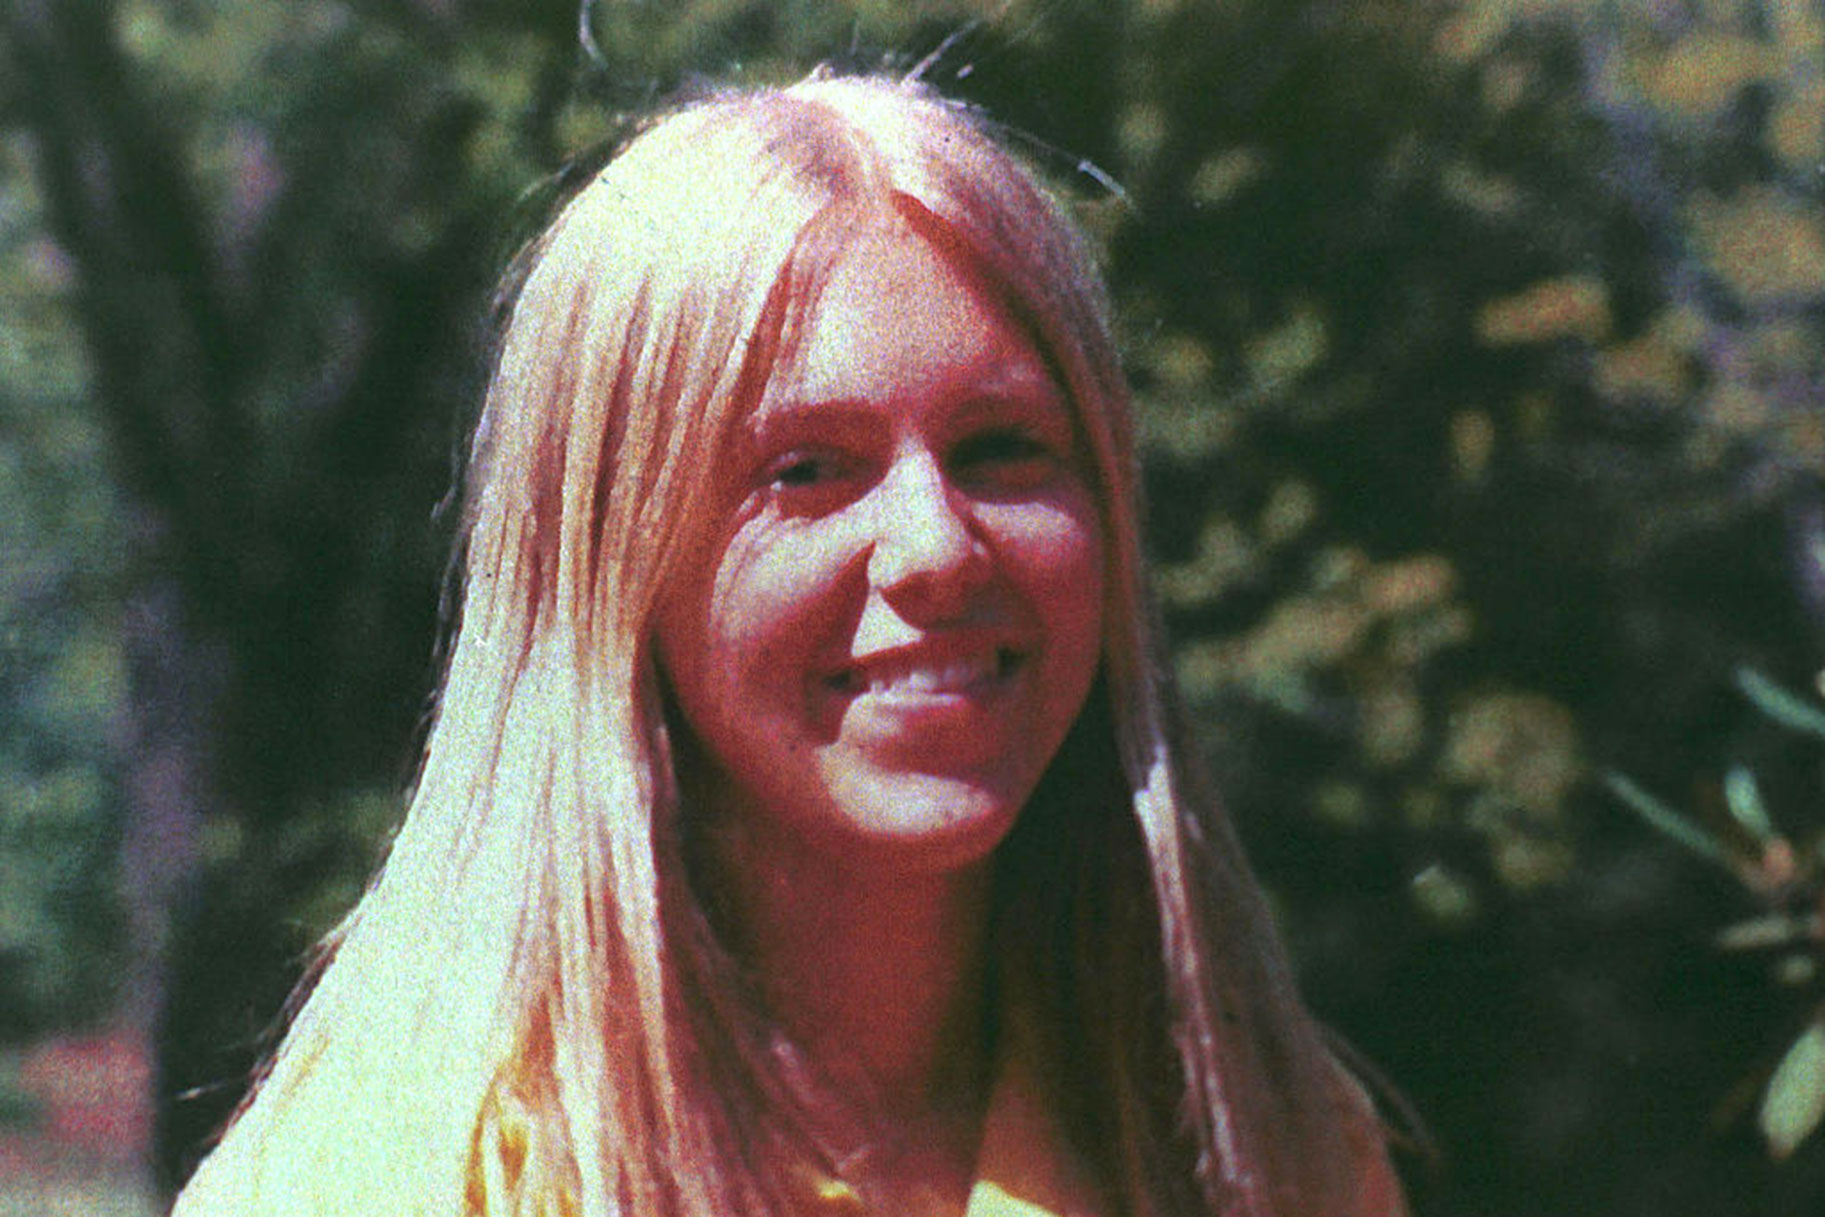 15-Year-Old Martha Moxley Murdered In 'Frenzy Killing,' Says Expert